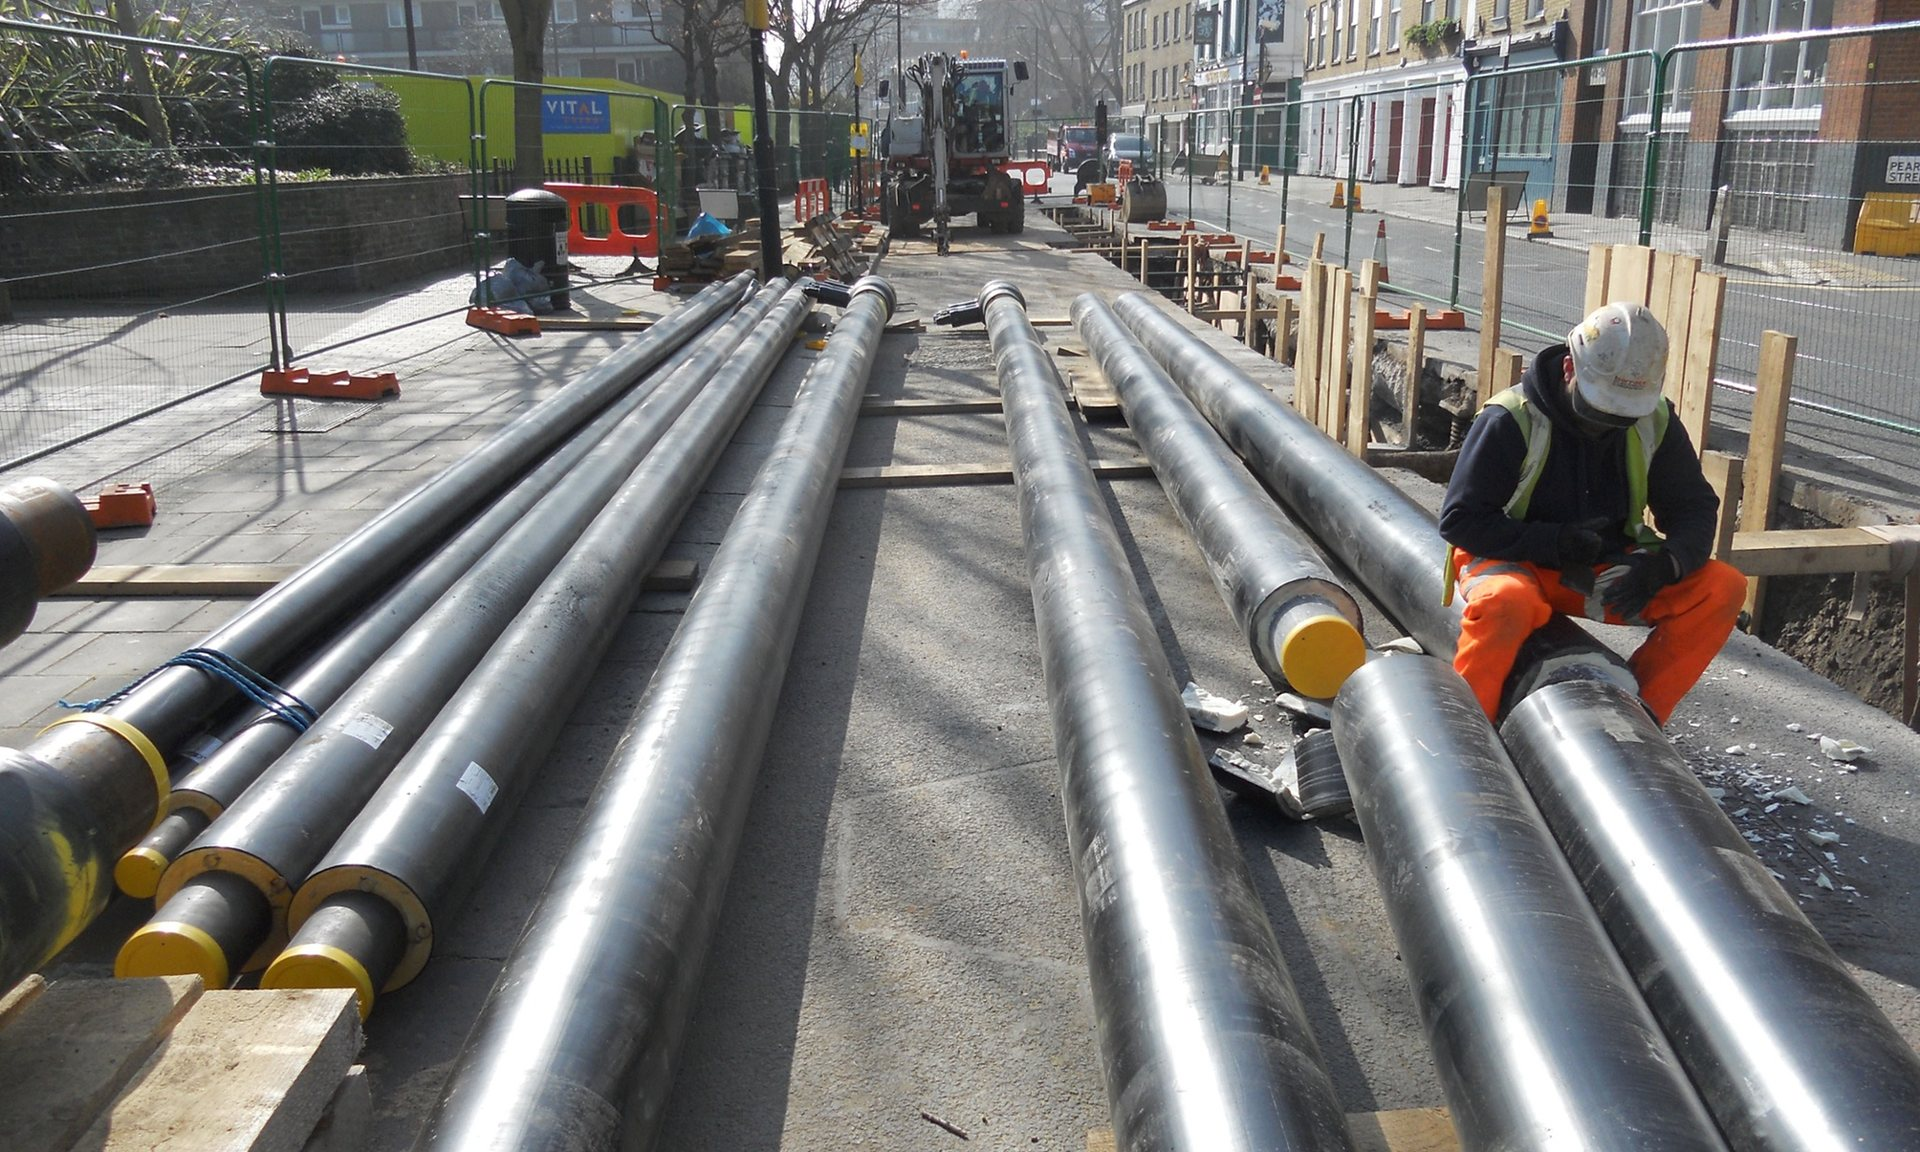 A workman installing heat network pipes in Islington, London.